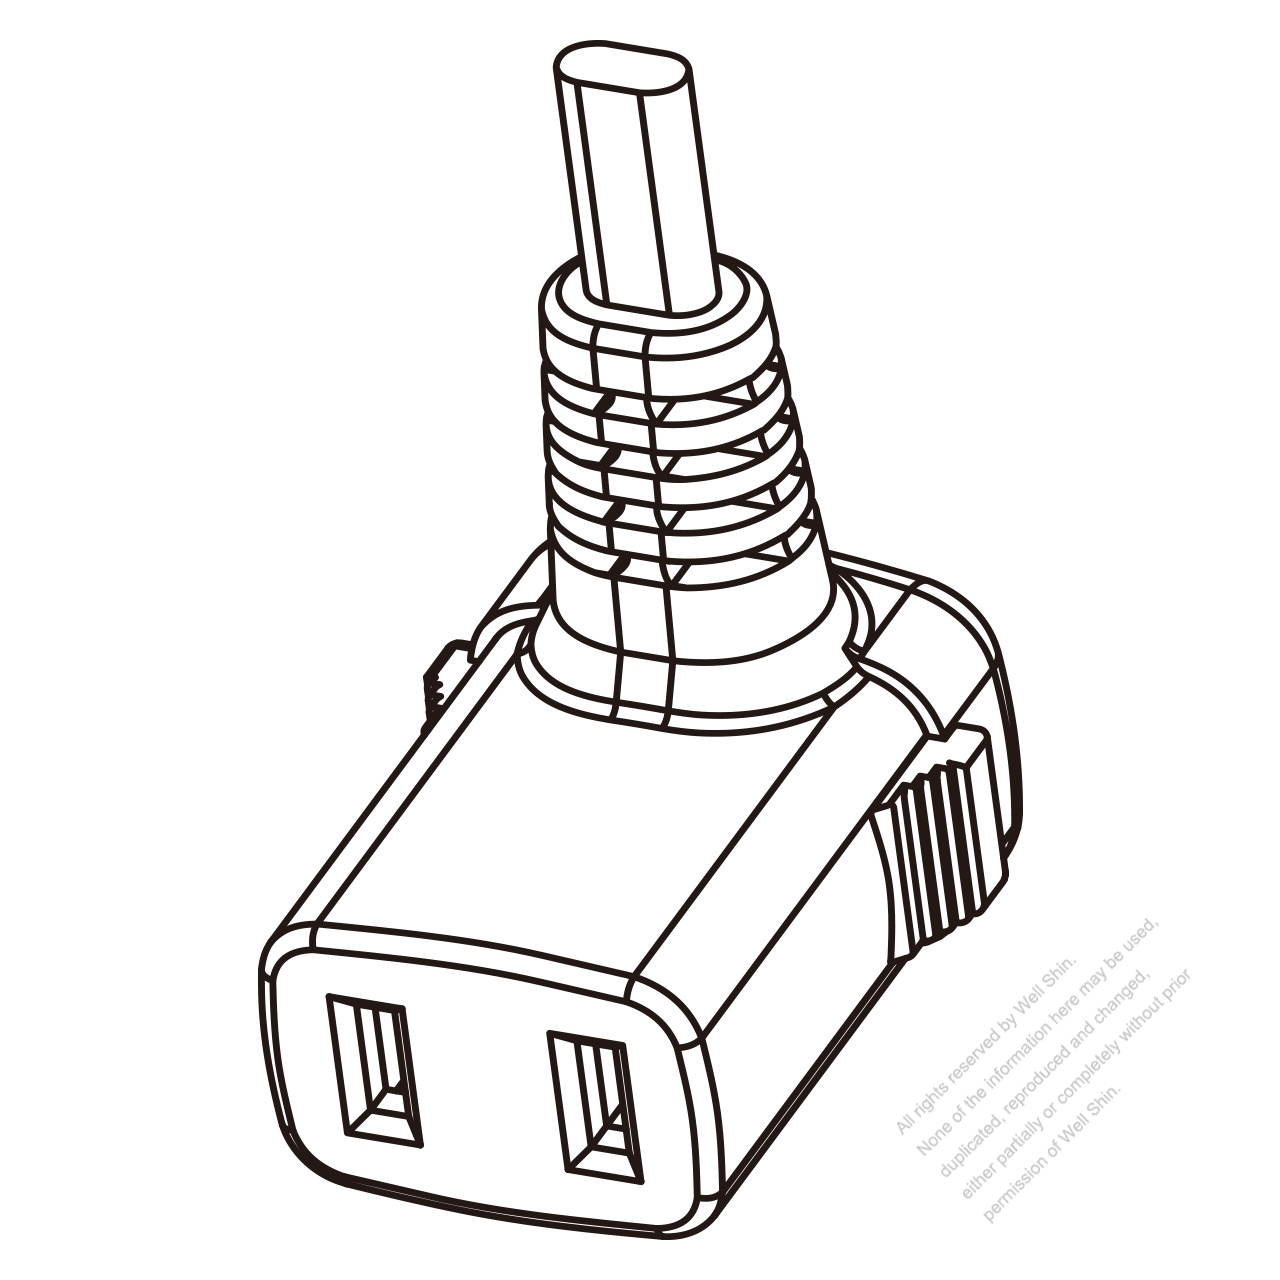 M 2 Connector